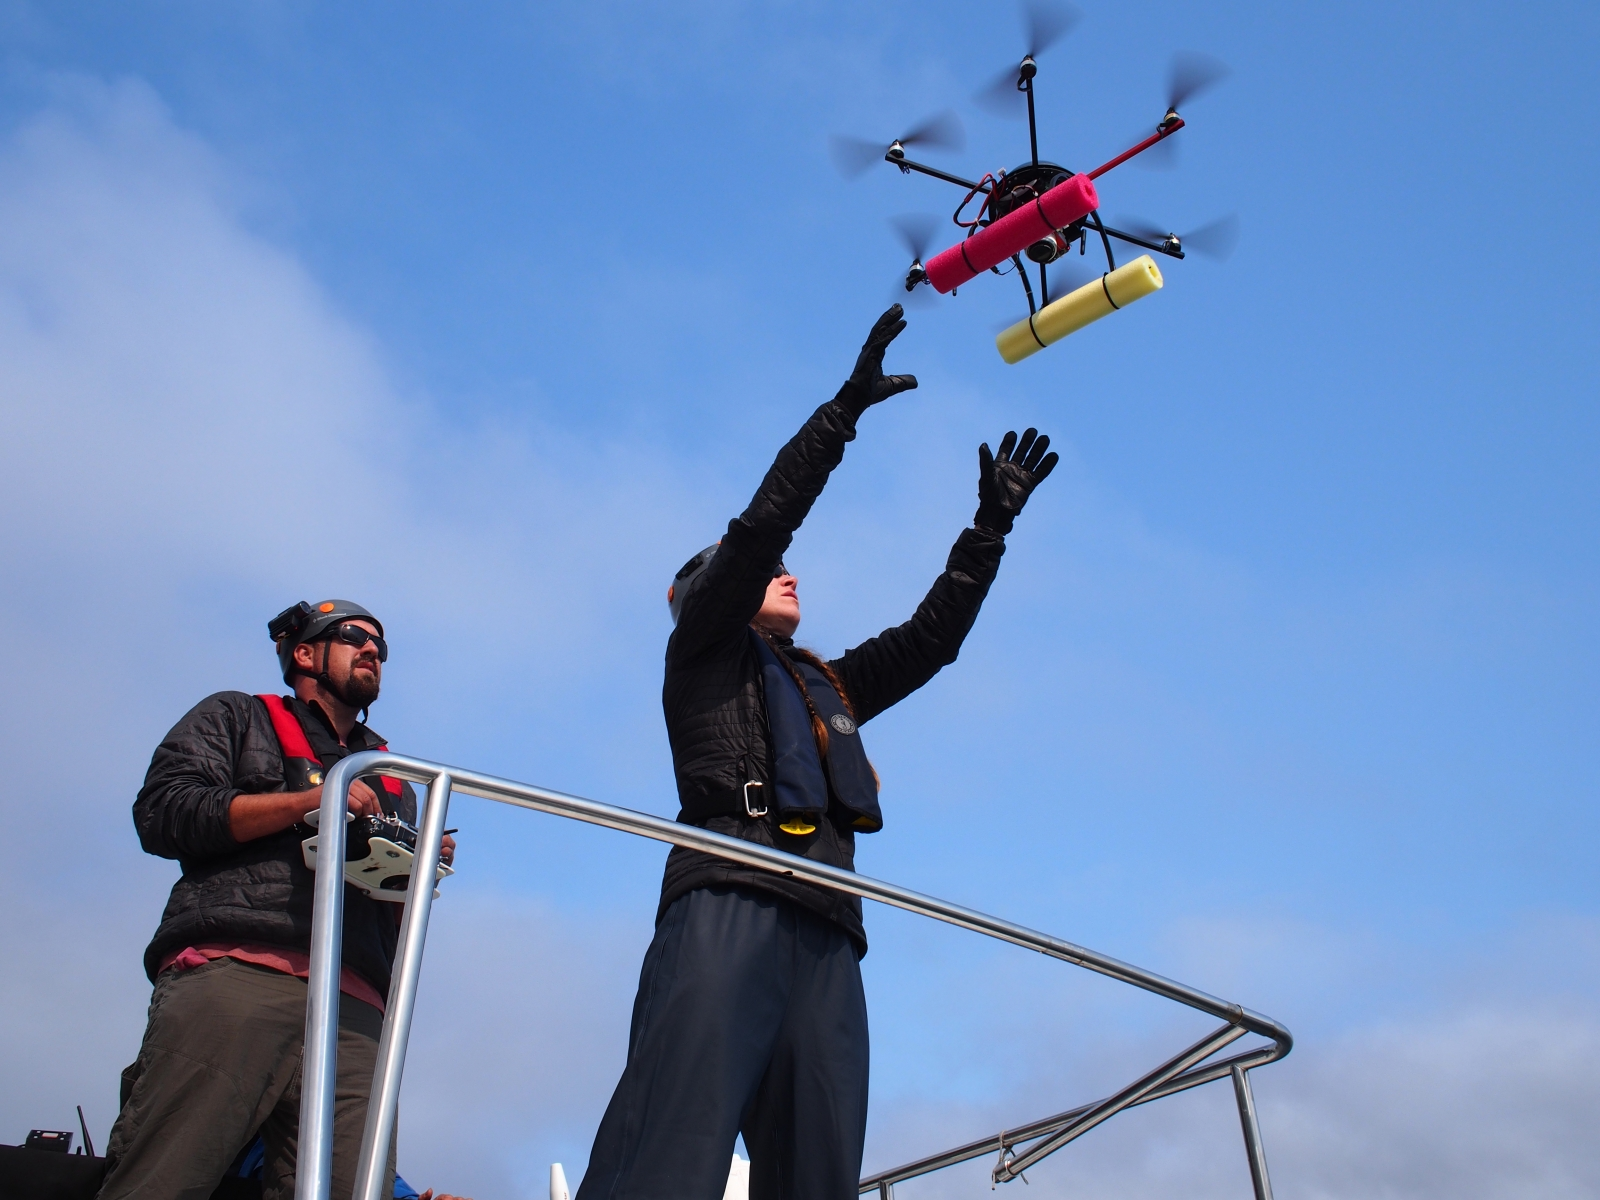 Researchers John Durban and Holly Fearnbach launch the Mobly drone from the roof of the Skana boat